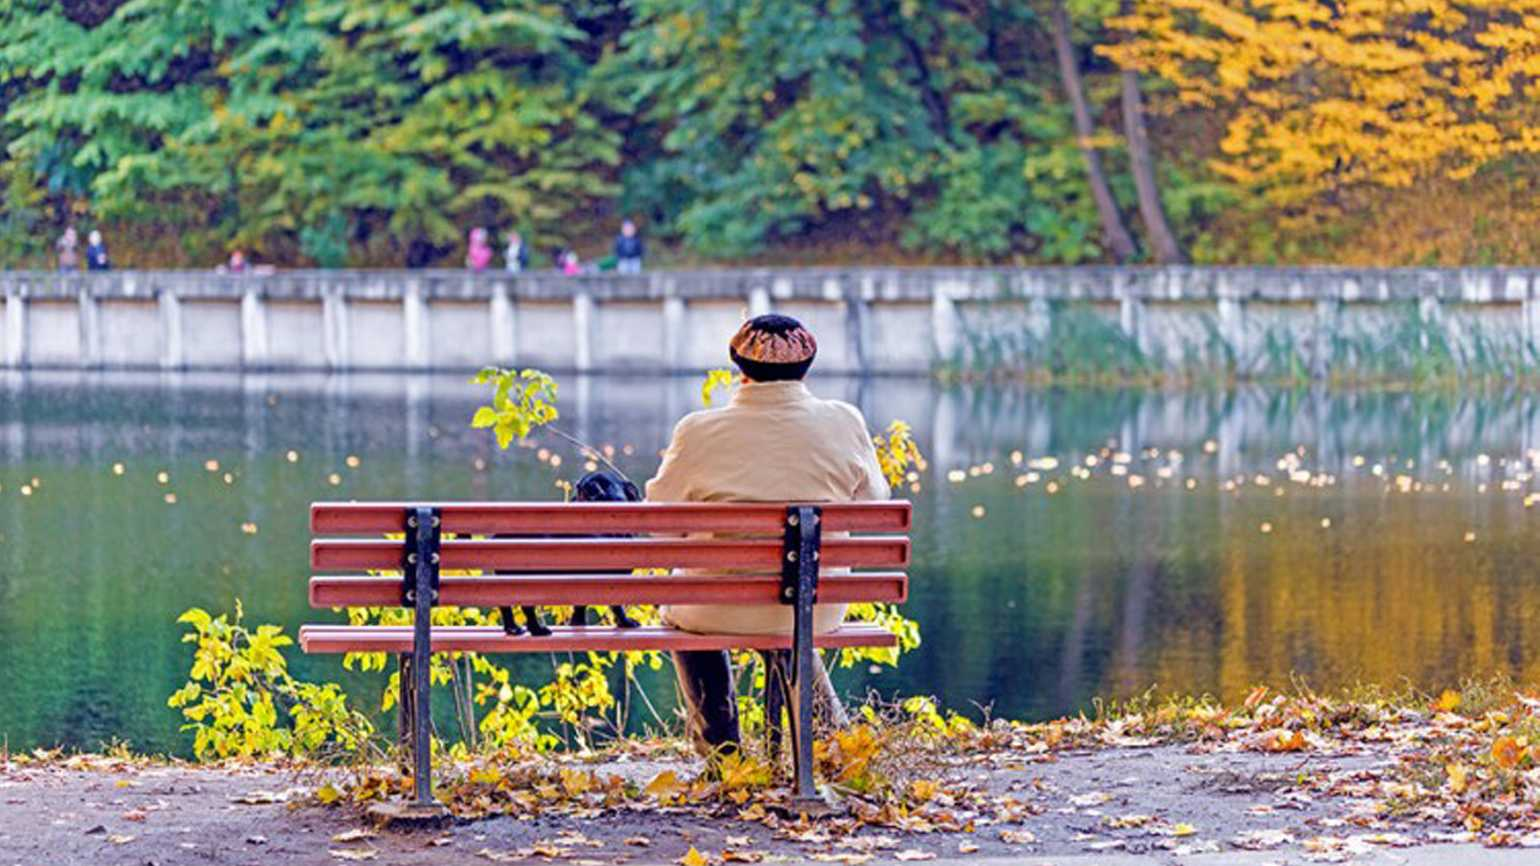 A woman sitting alone on a bench at a park on a crisp Autumn day.